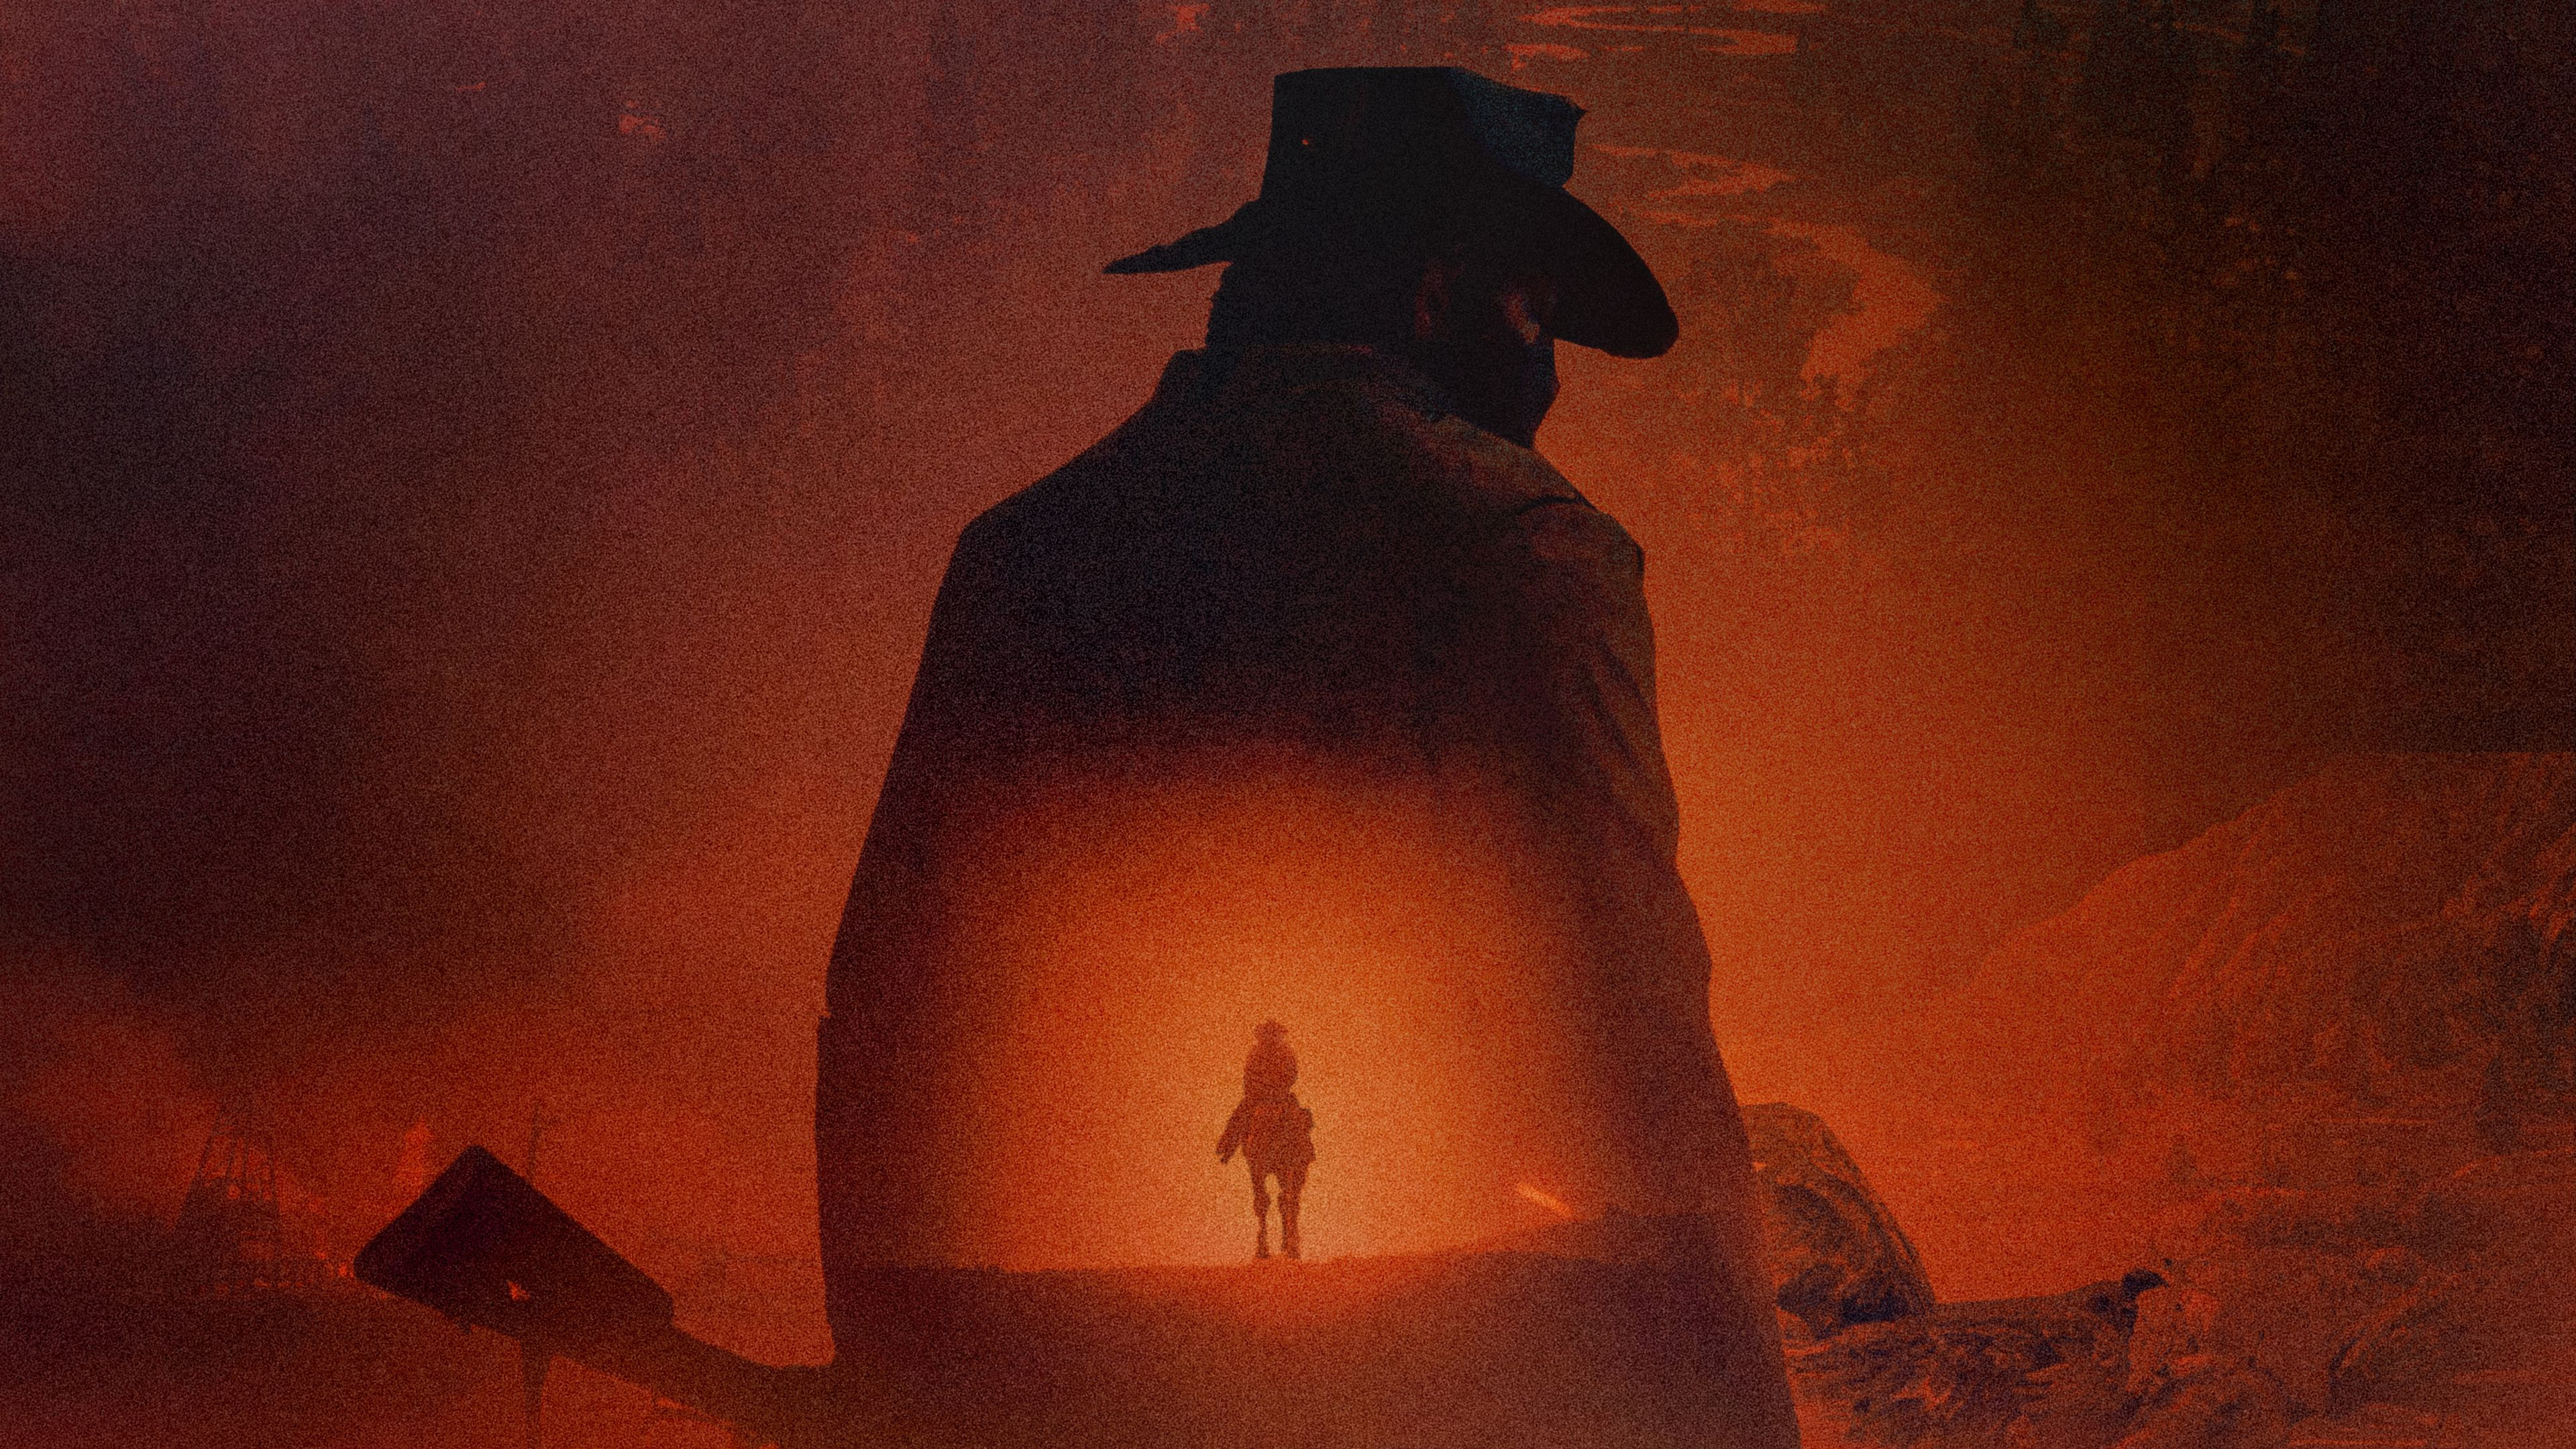 Red Dead Redemption 2 Poster Key Art 2018 Wallpaper With Images